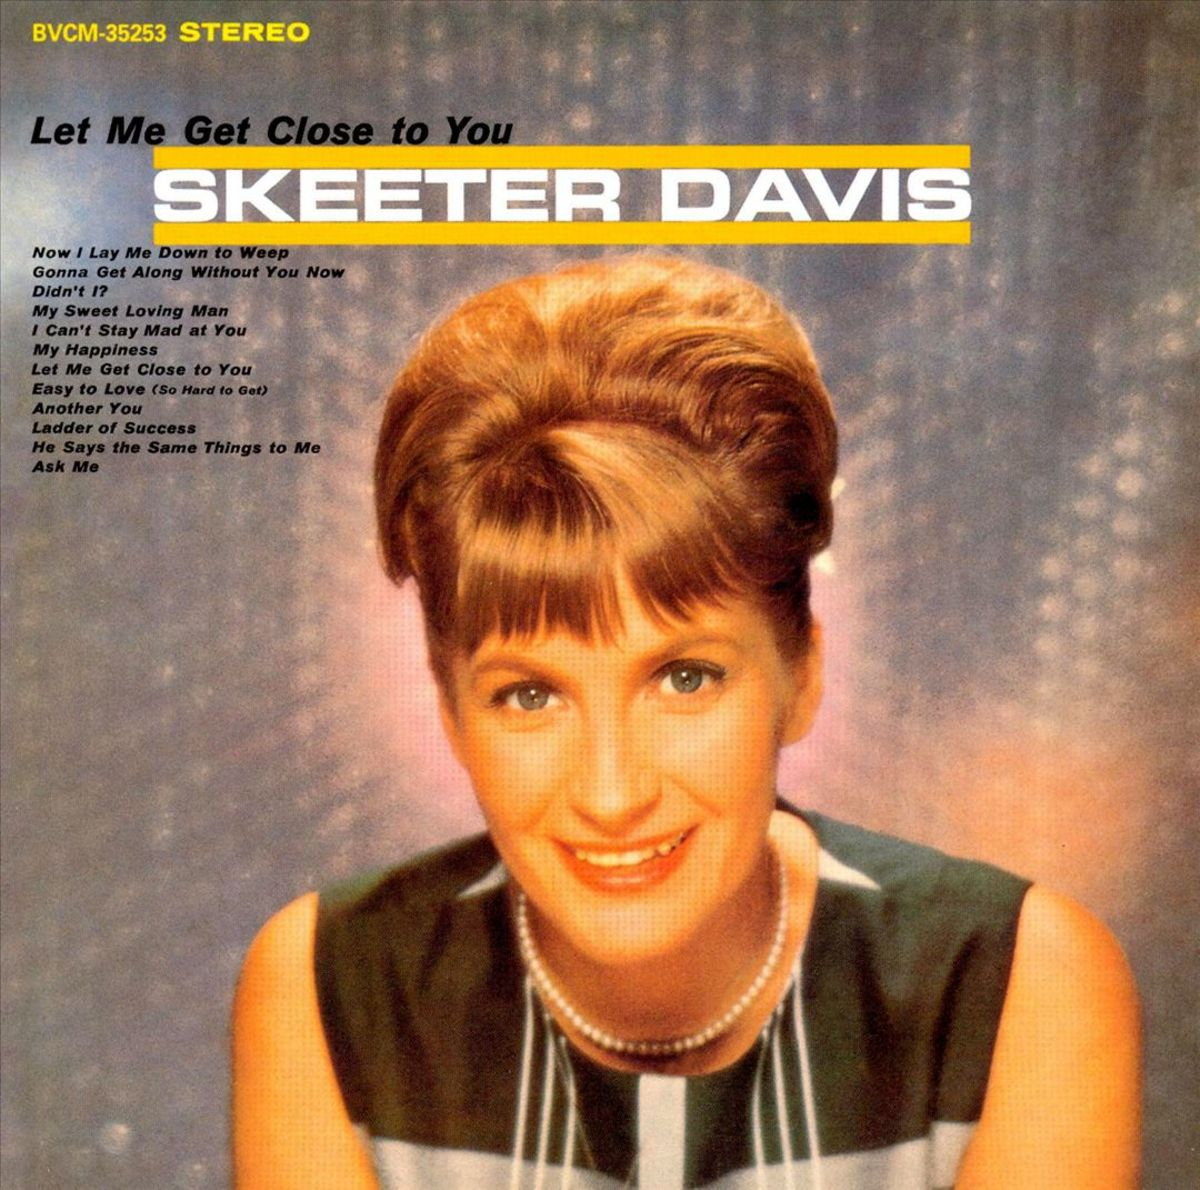 Ladder of Success by Skeeter Davis features in Season 4